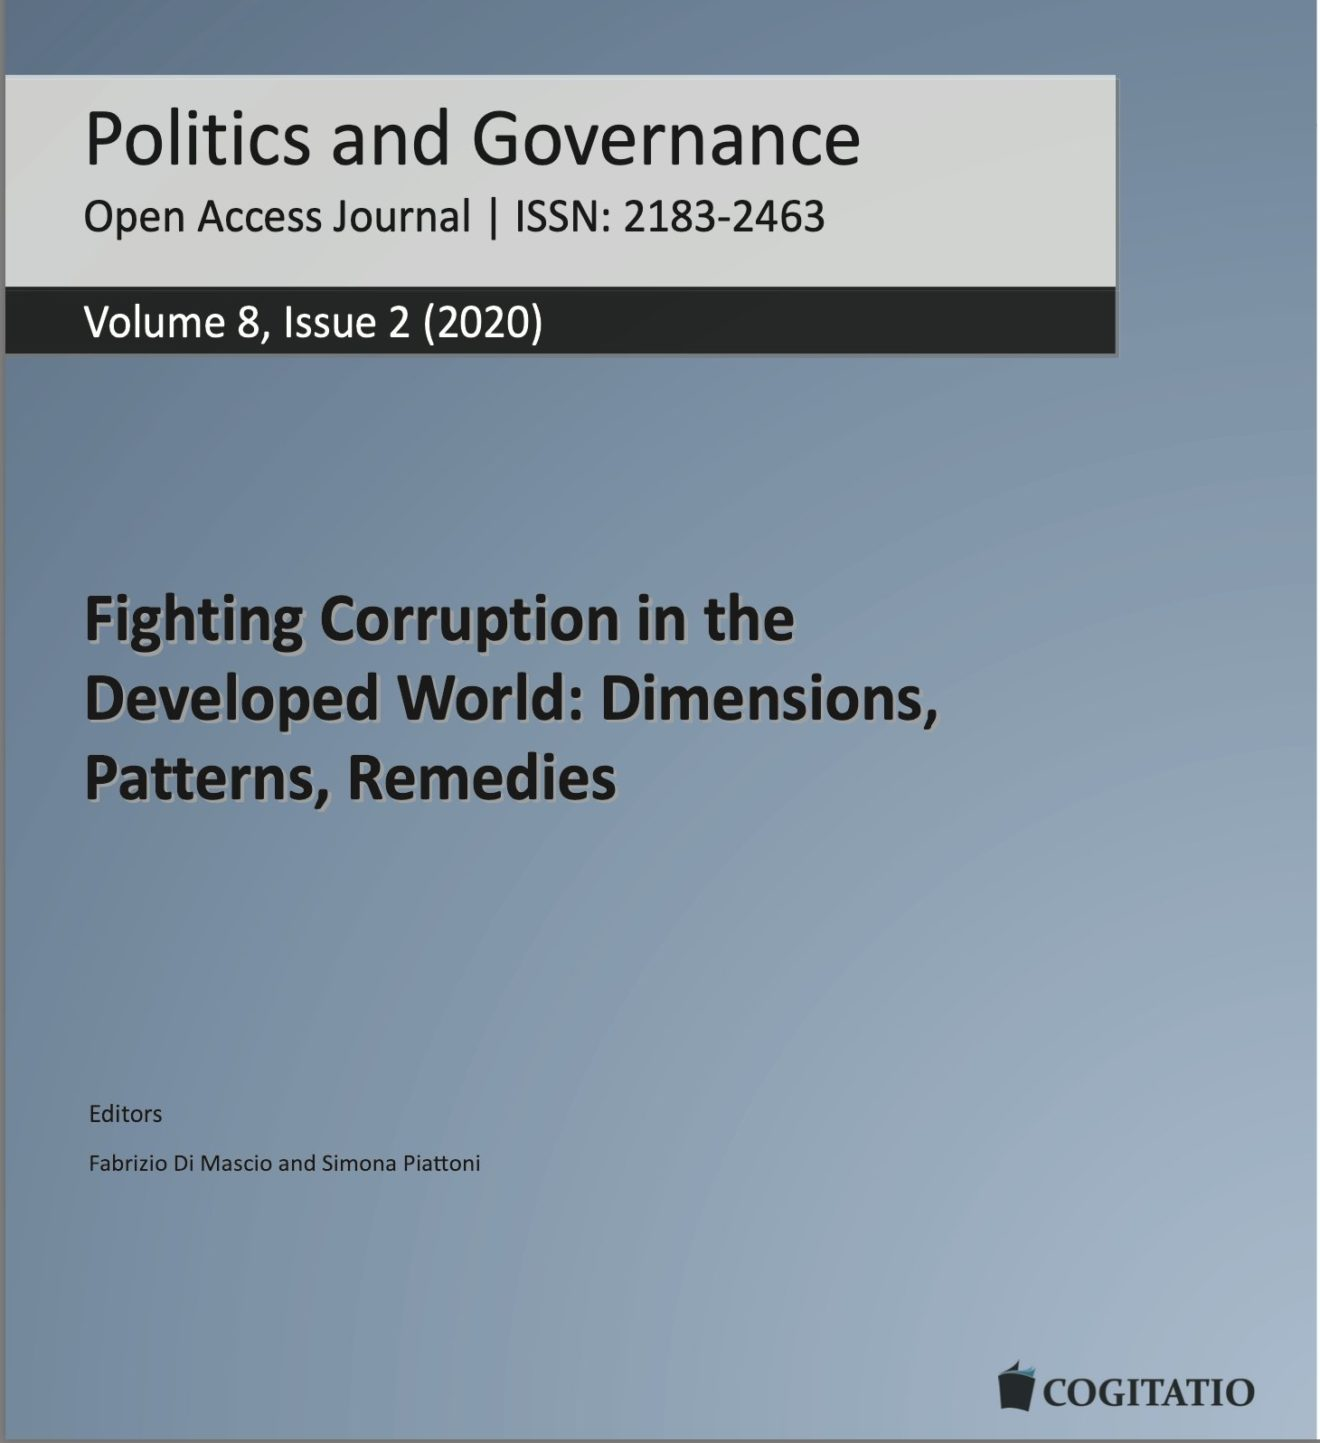 Corruption Control and Regulatory Innovation in the Developed World